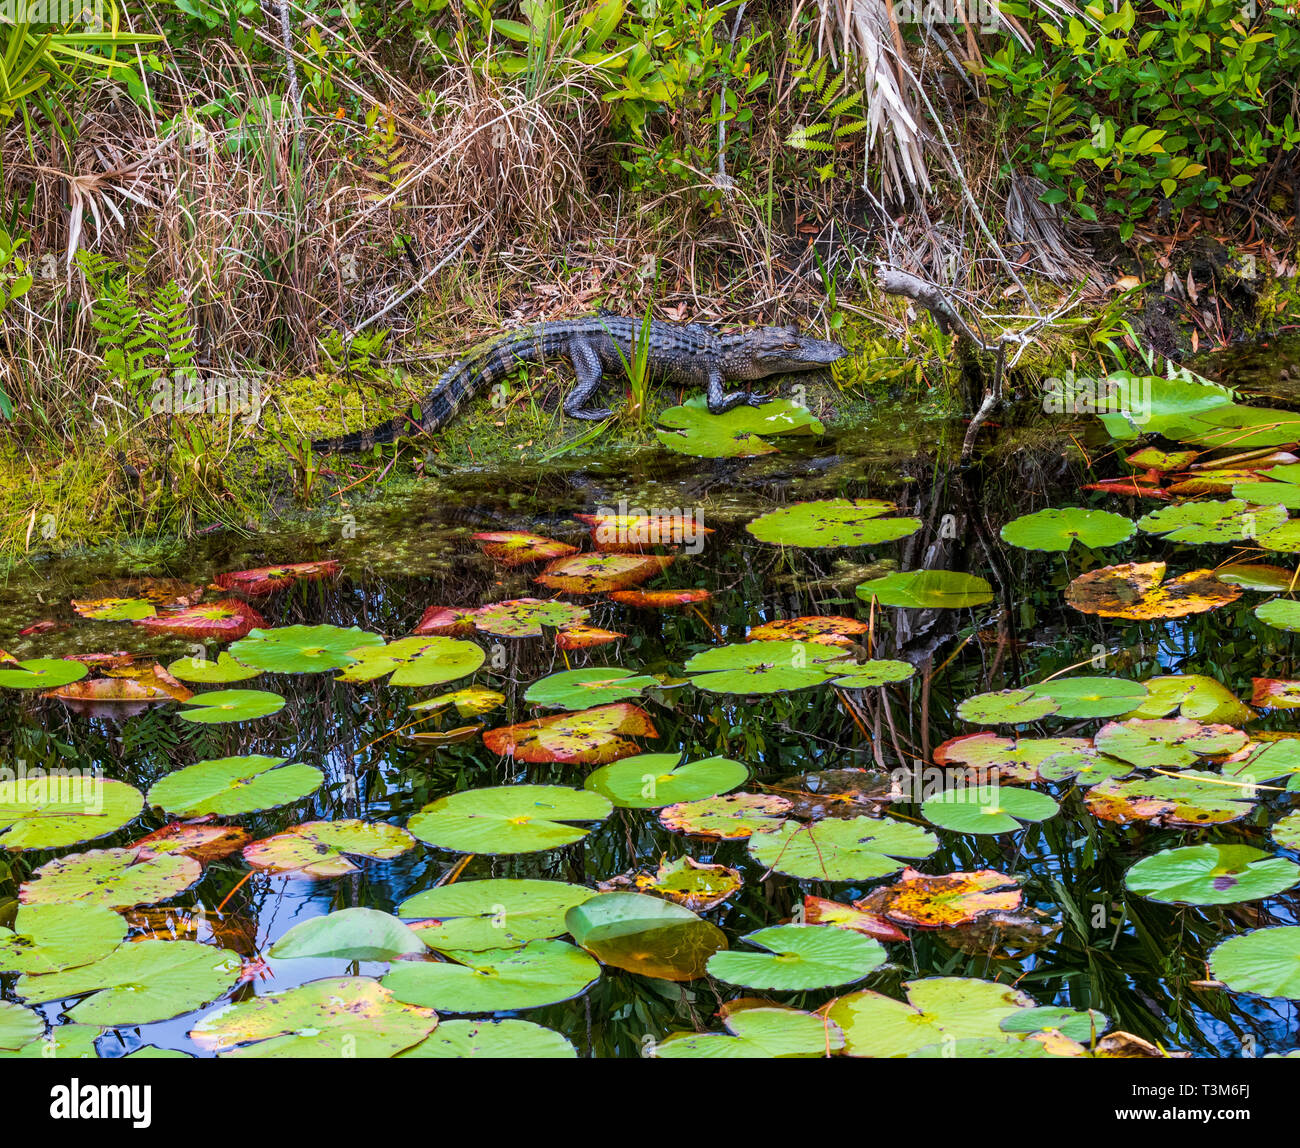 Small American alligator on  bank of okefenokee swamp, with lily pads in foreground.  Horizontal image. - Stock Image